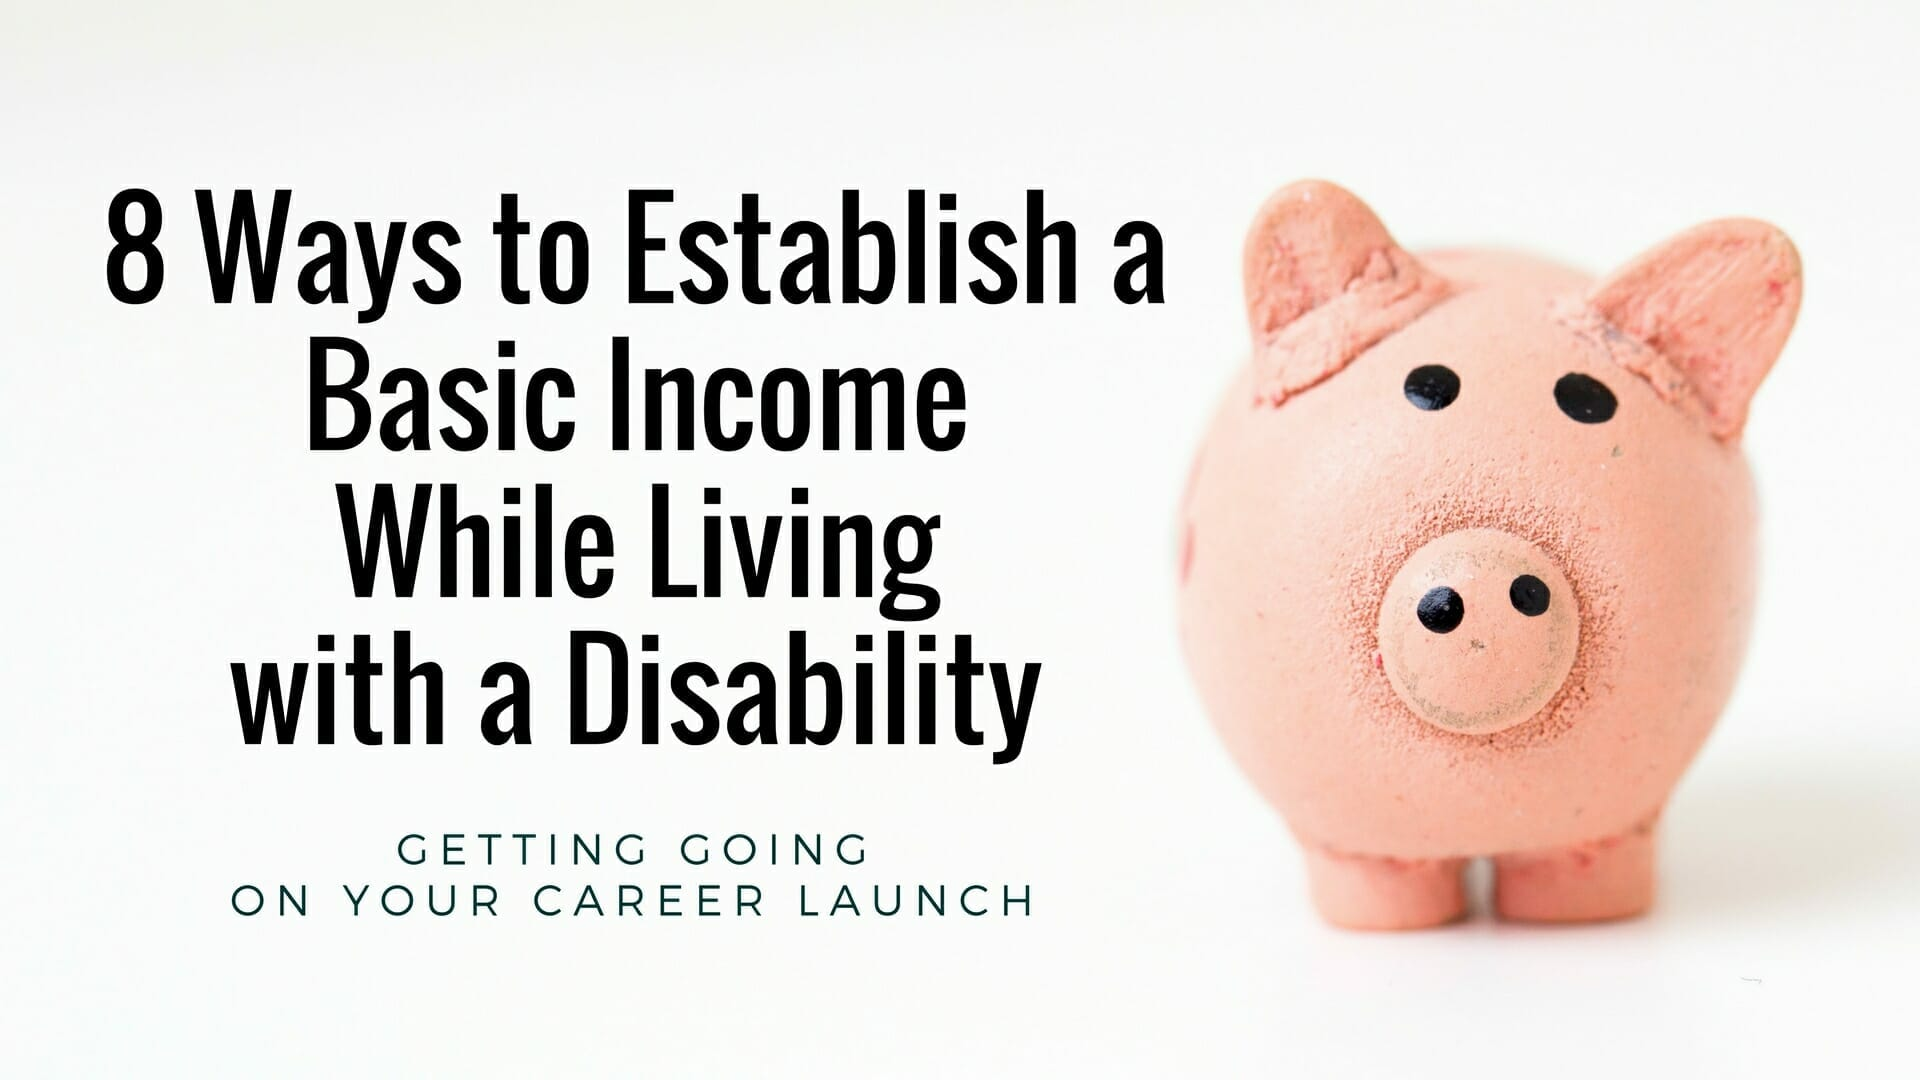 Eight ways to establish a basic income while living with a disability